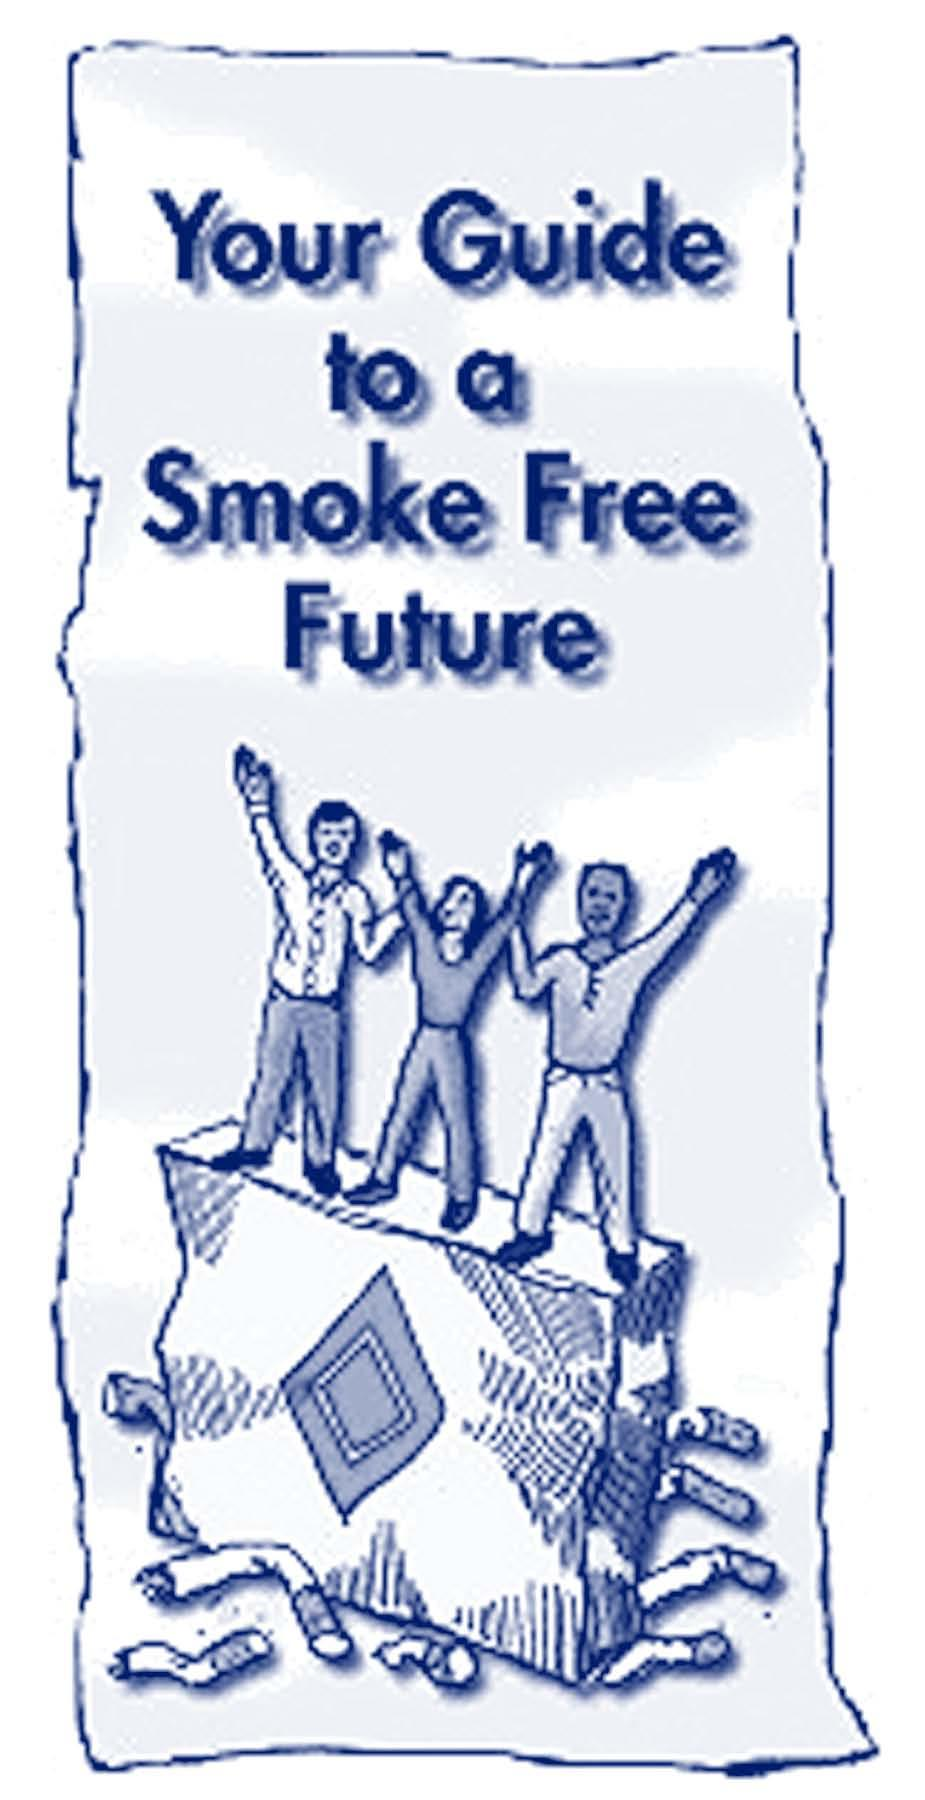 Your Guide to a Smoke Free Future If you smoke, or if you have quit within the past 2 months, then ask for our detailed handout which provides information on how to begin and maintain a smoke-free